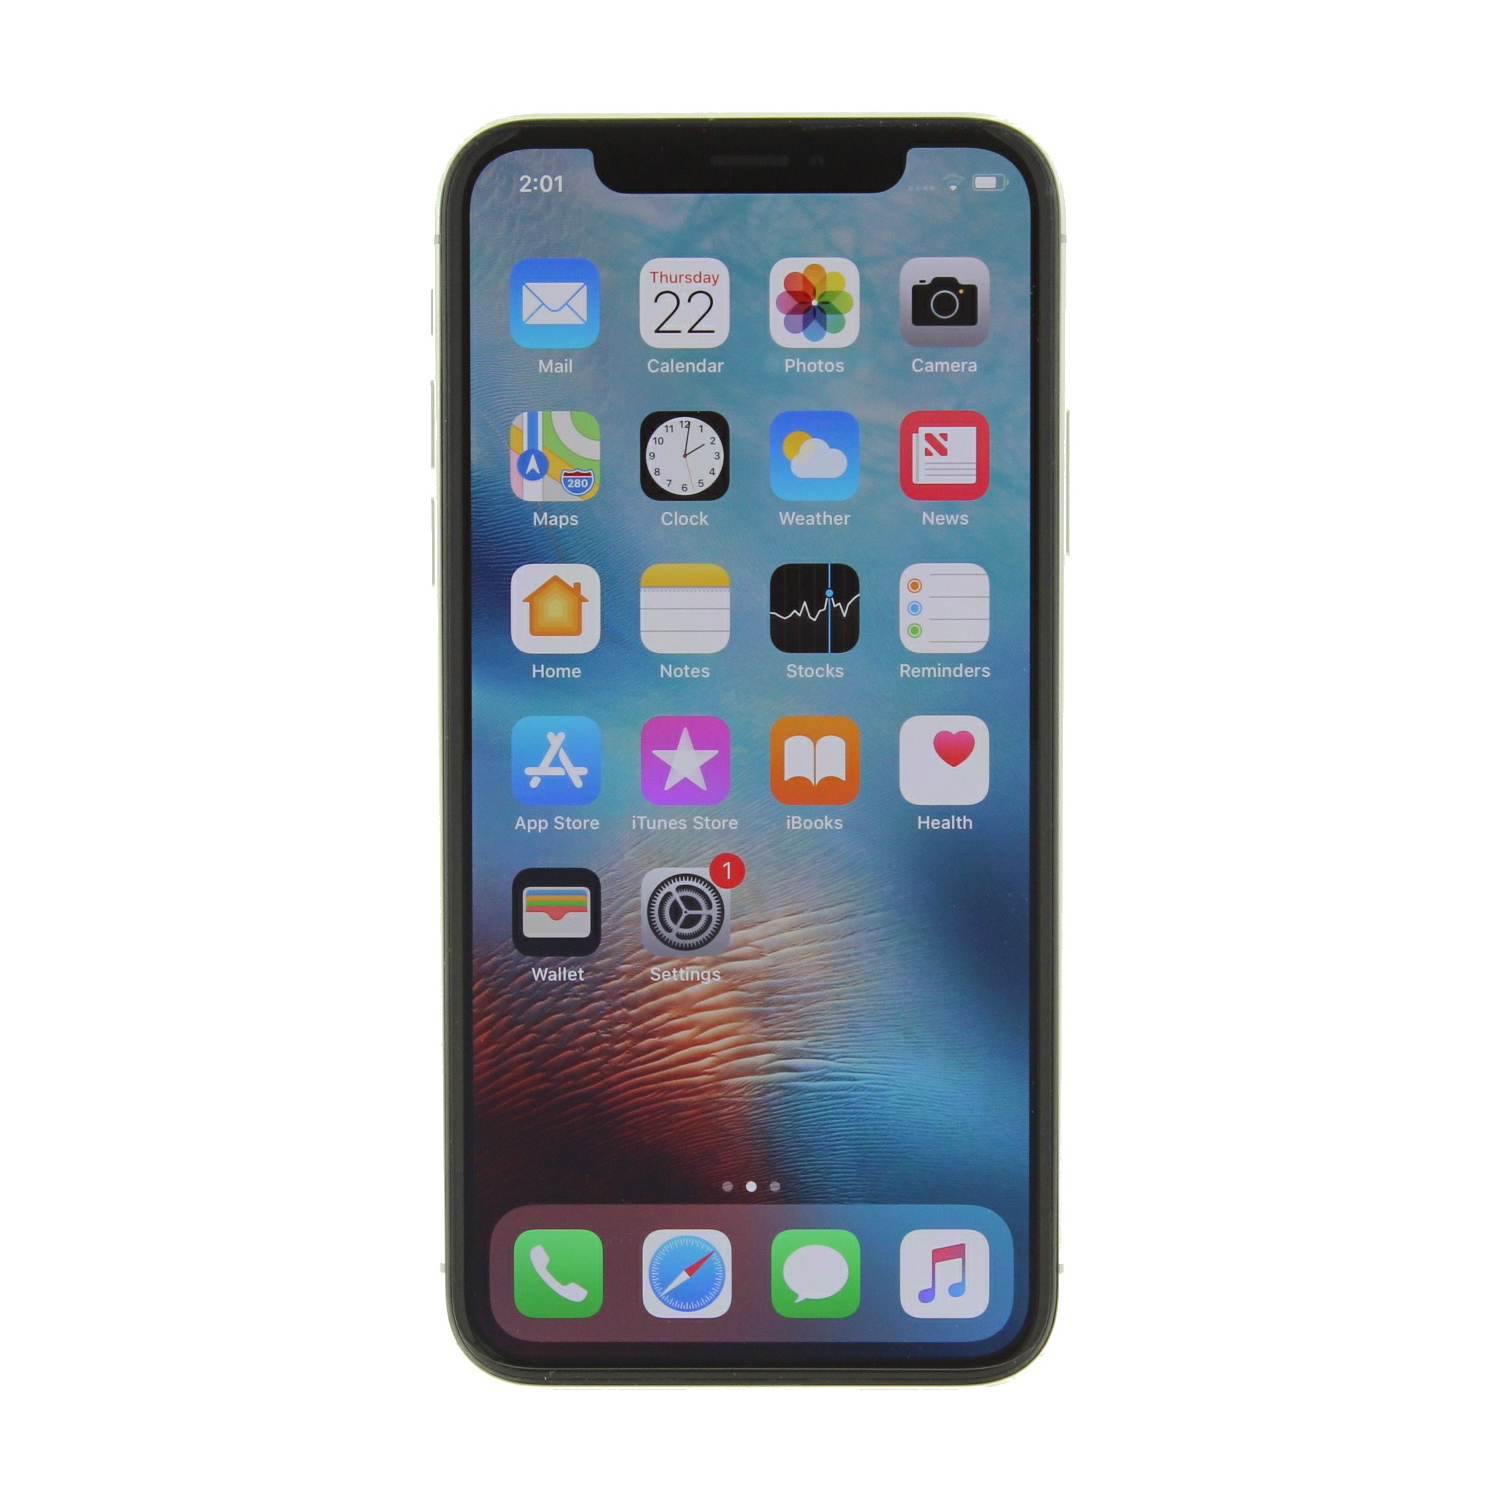 Apple iPhone X a1901 64GB GSM Unlocked (Refurbished)